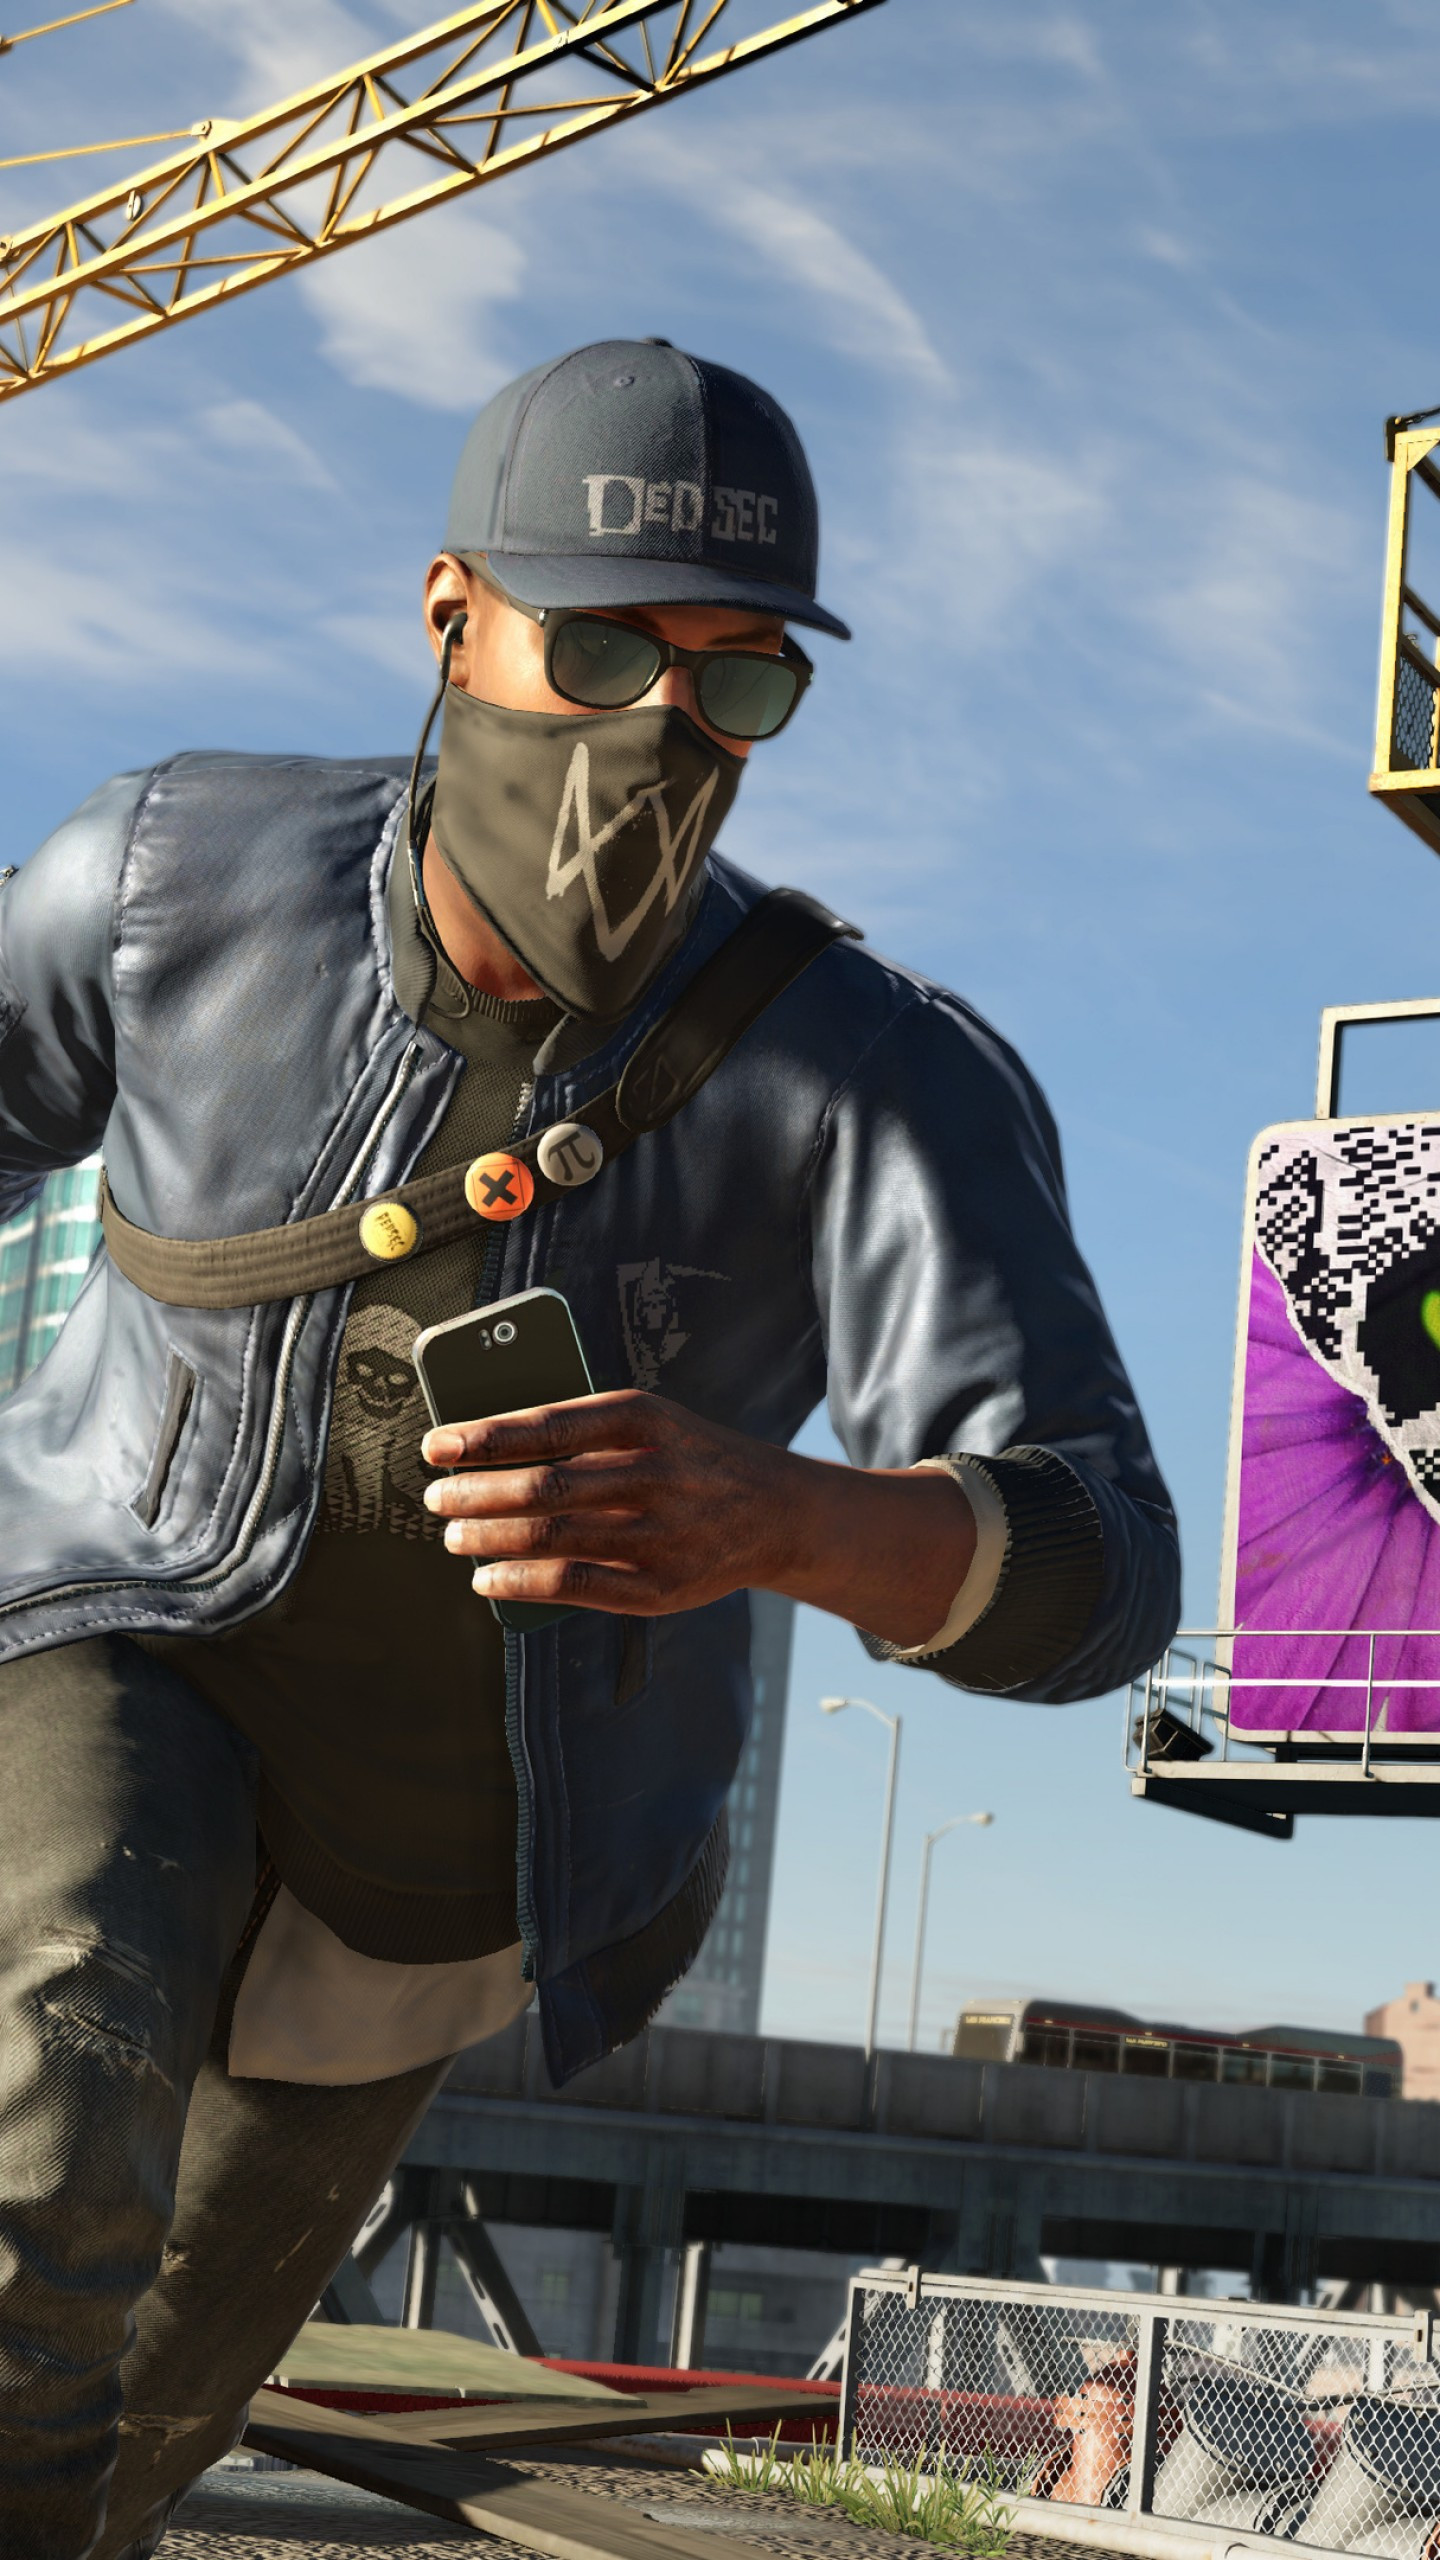 watch dogs 2 hd wallpaper for pc